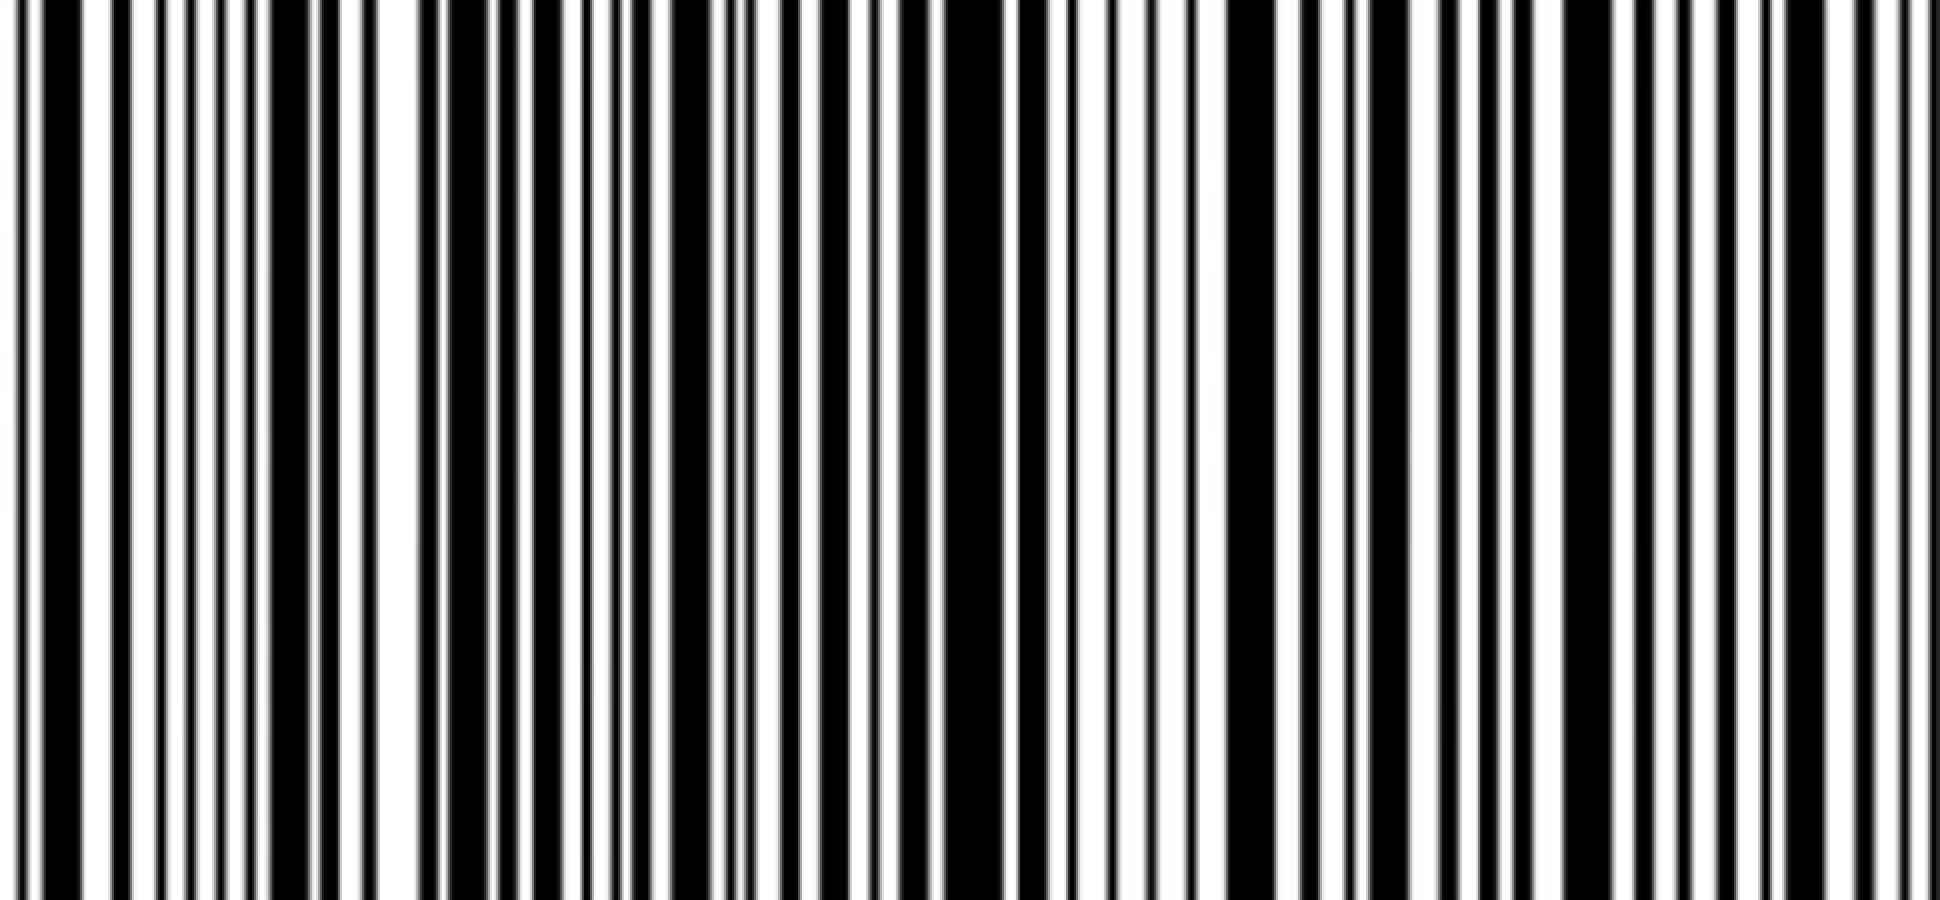 6 lessons on innovation from the history of the barcode inc com